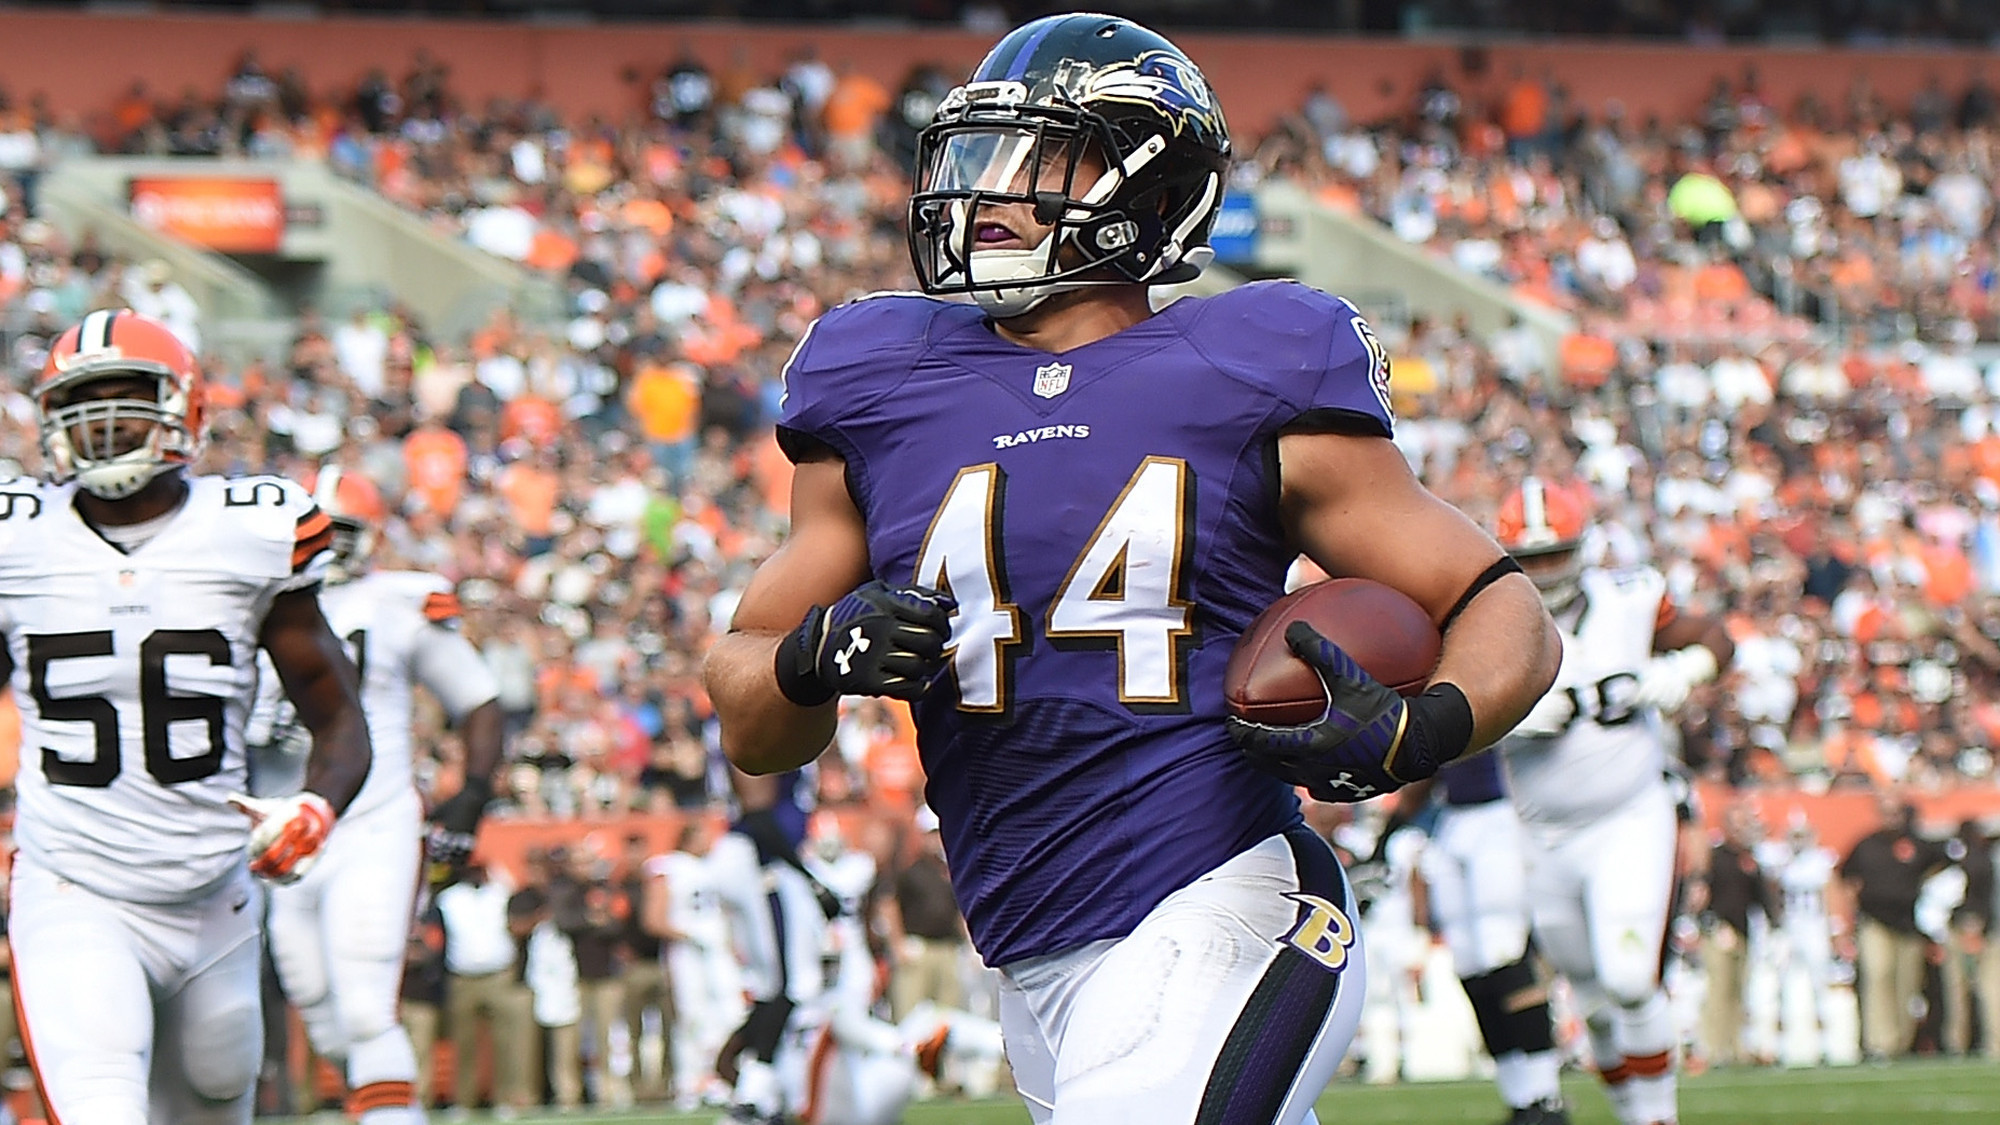 Ravens  Kyle Juszczyk getting high marks for blocking in first year as  starter - Baltimore Sun 6dd9f12be